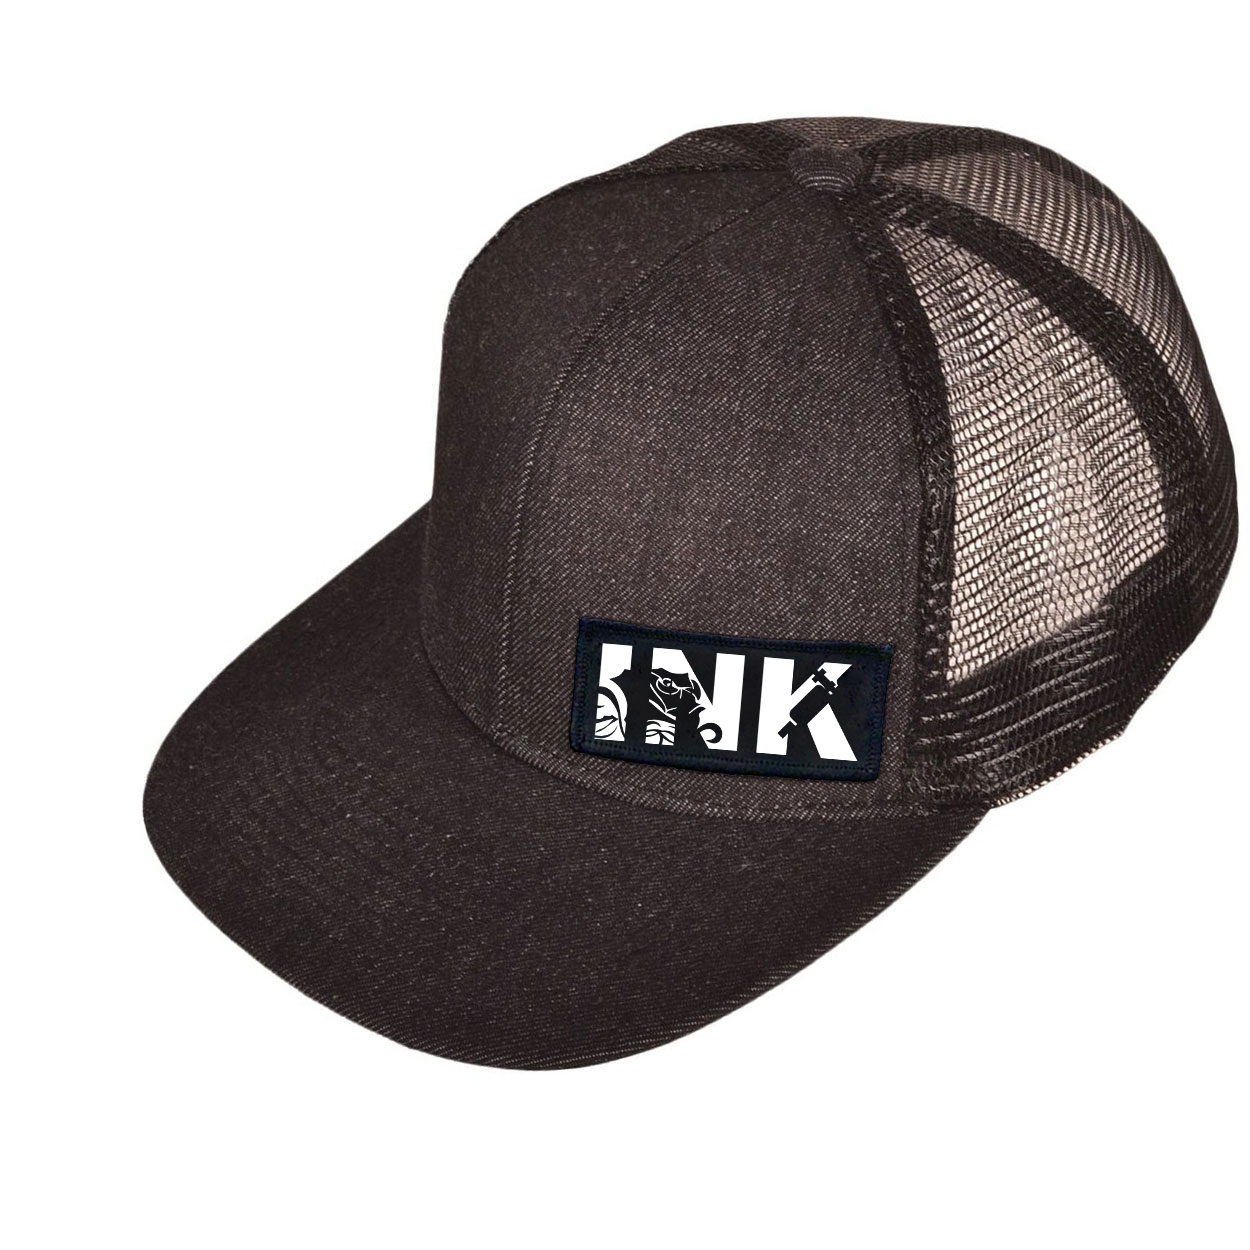 Ink Tattoo Logo Night Out Woven Patch Snapback Flat Brim Hat Black Denim (White Logo)